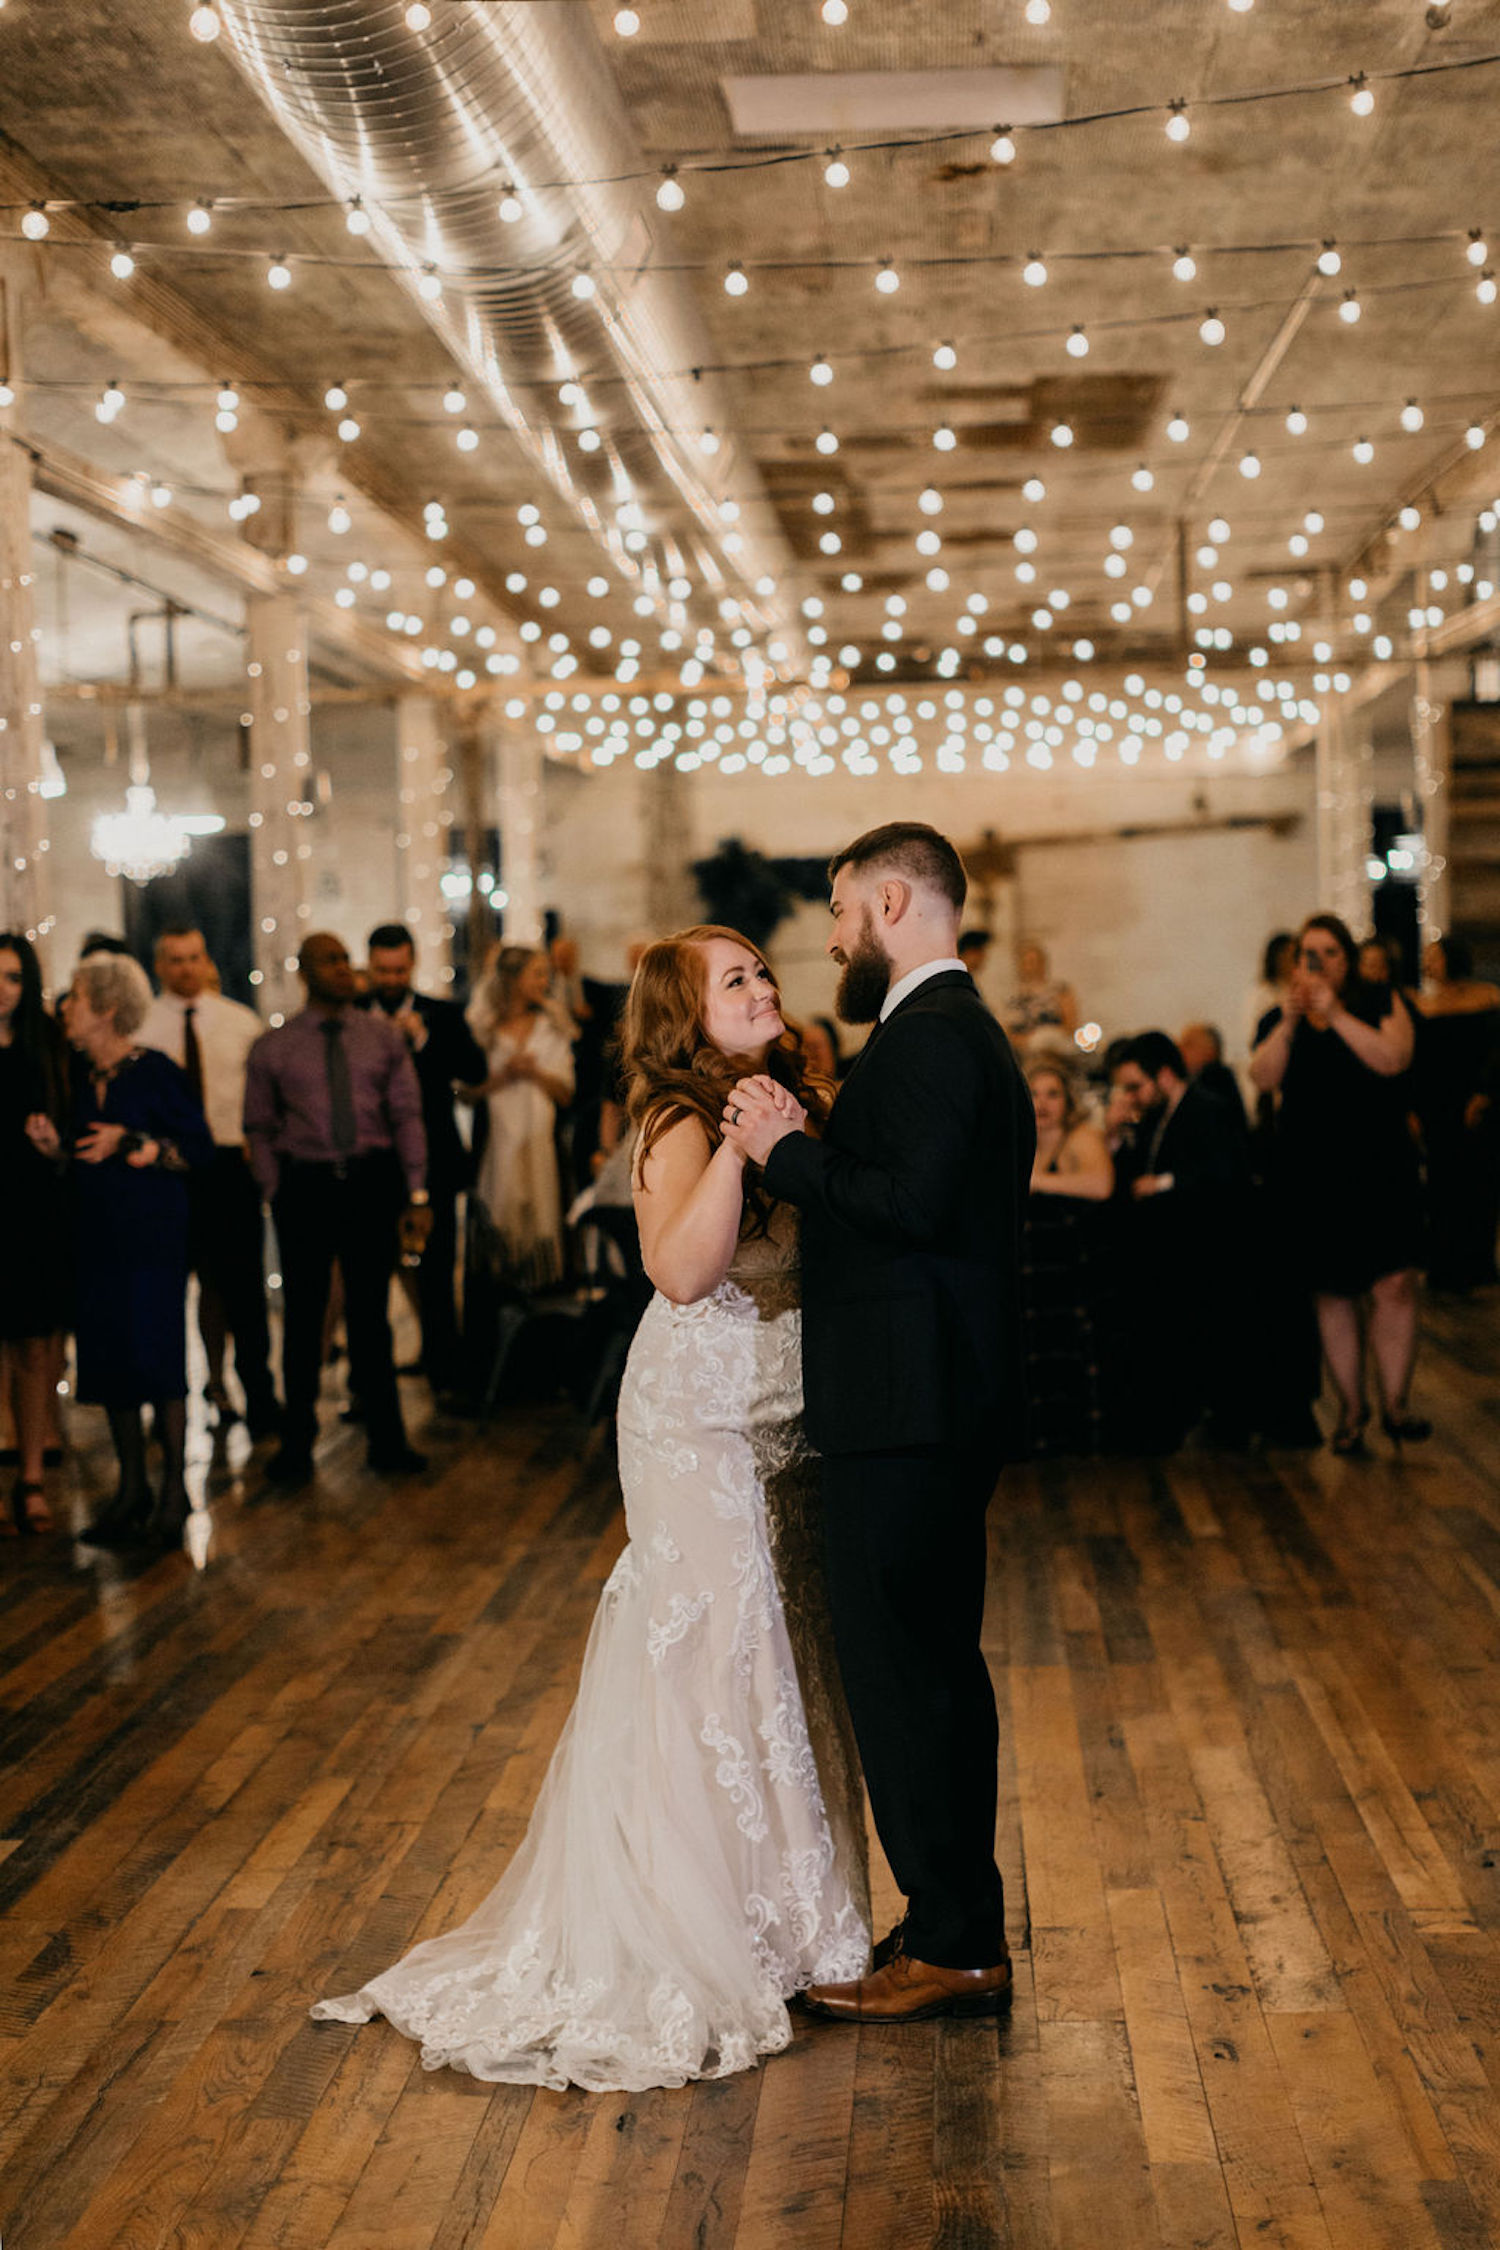 Bride and groom dancing together at their Journeyman Distillery wedding